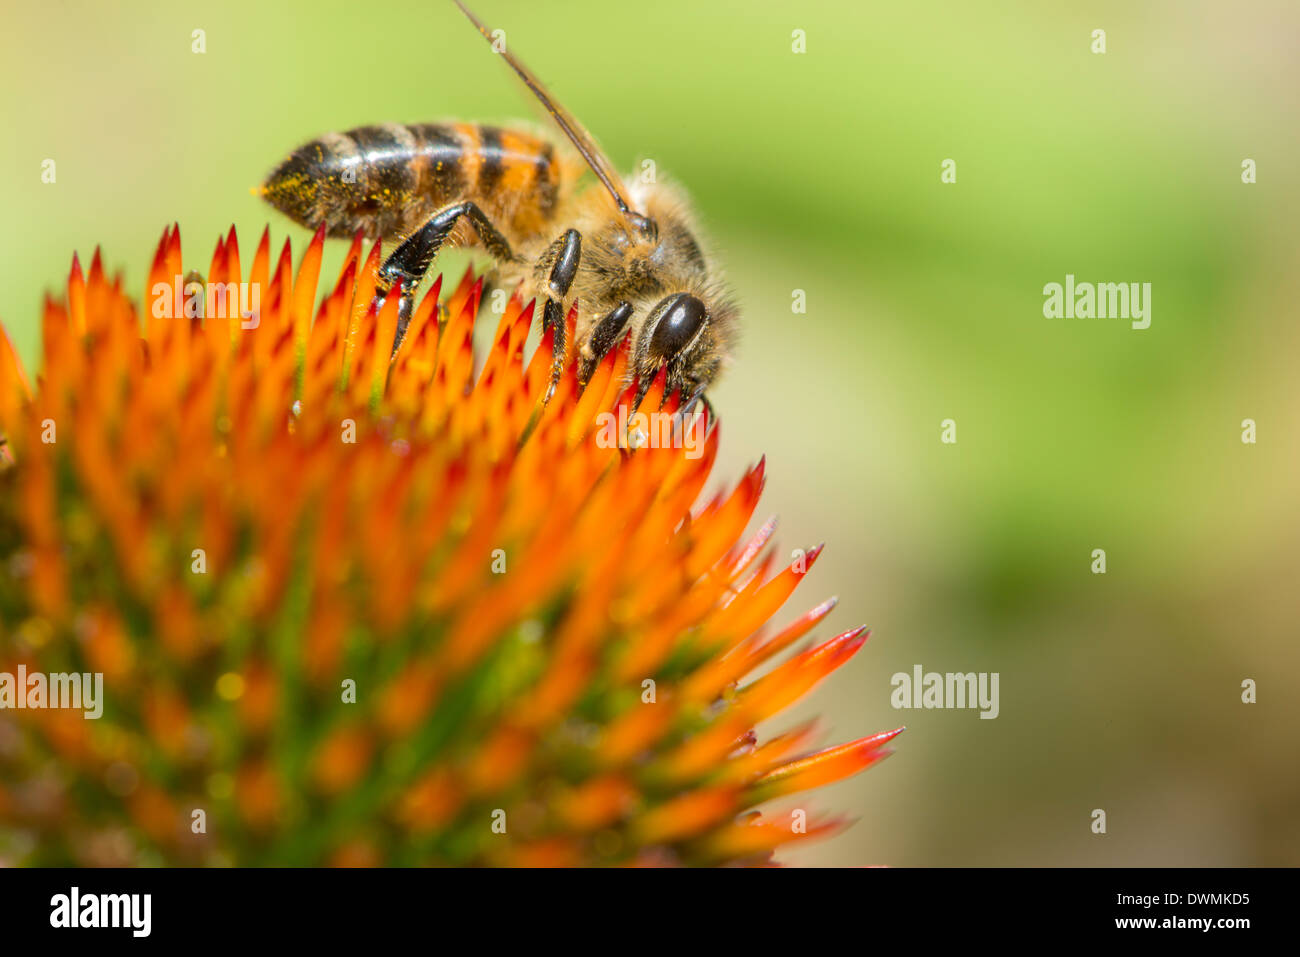 Honey bee (Apis mellifera) feeding on Echinacea sp. (cone flower) nectar, England, United Kingdom, Europe - Stock Image